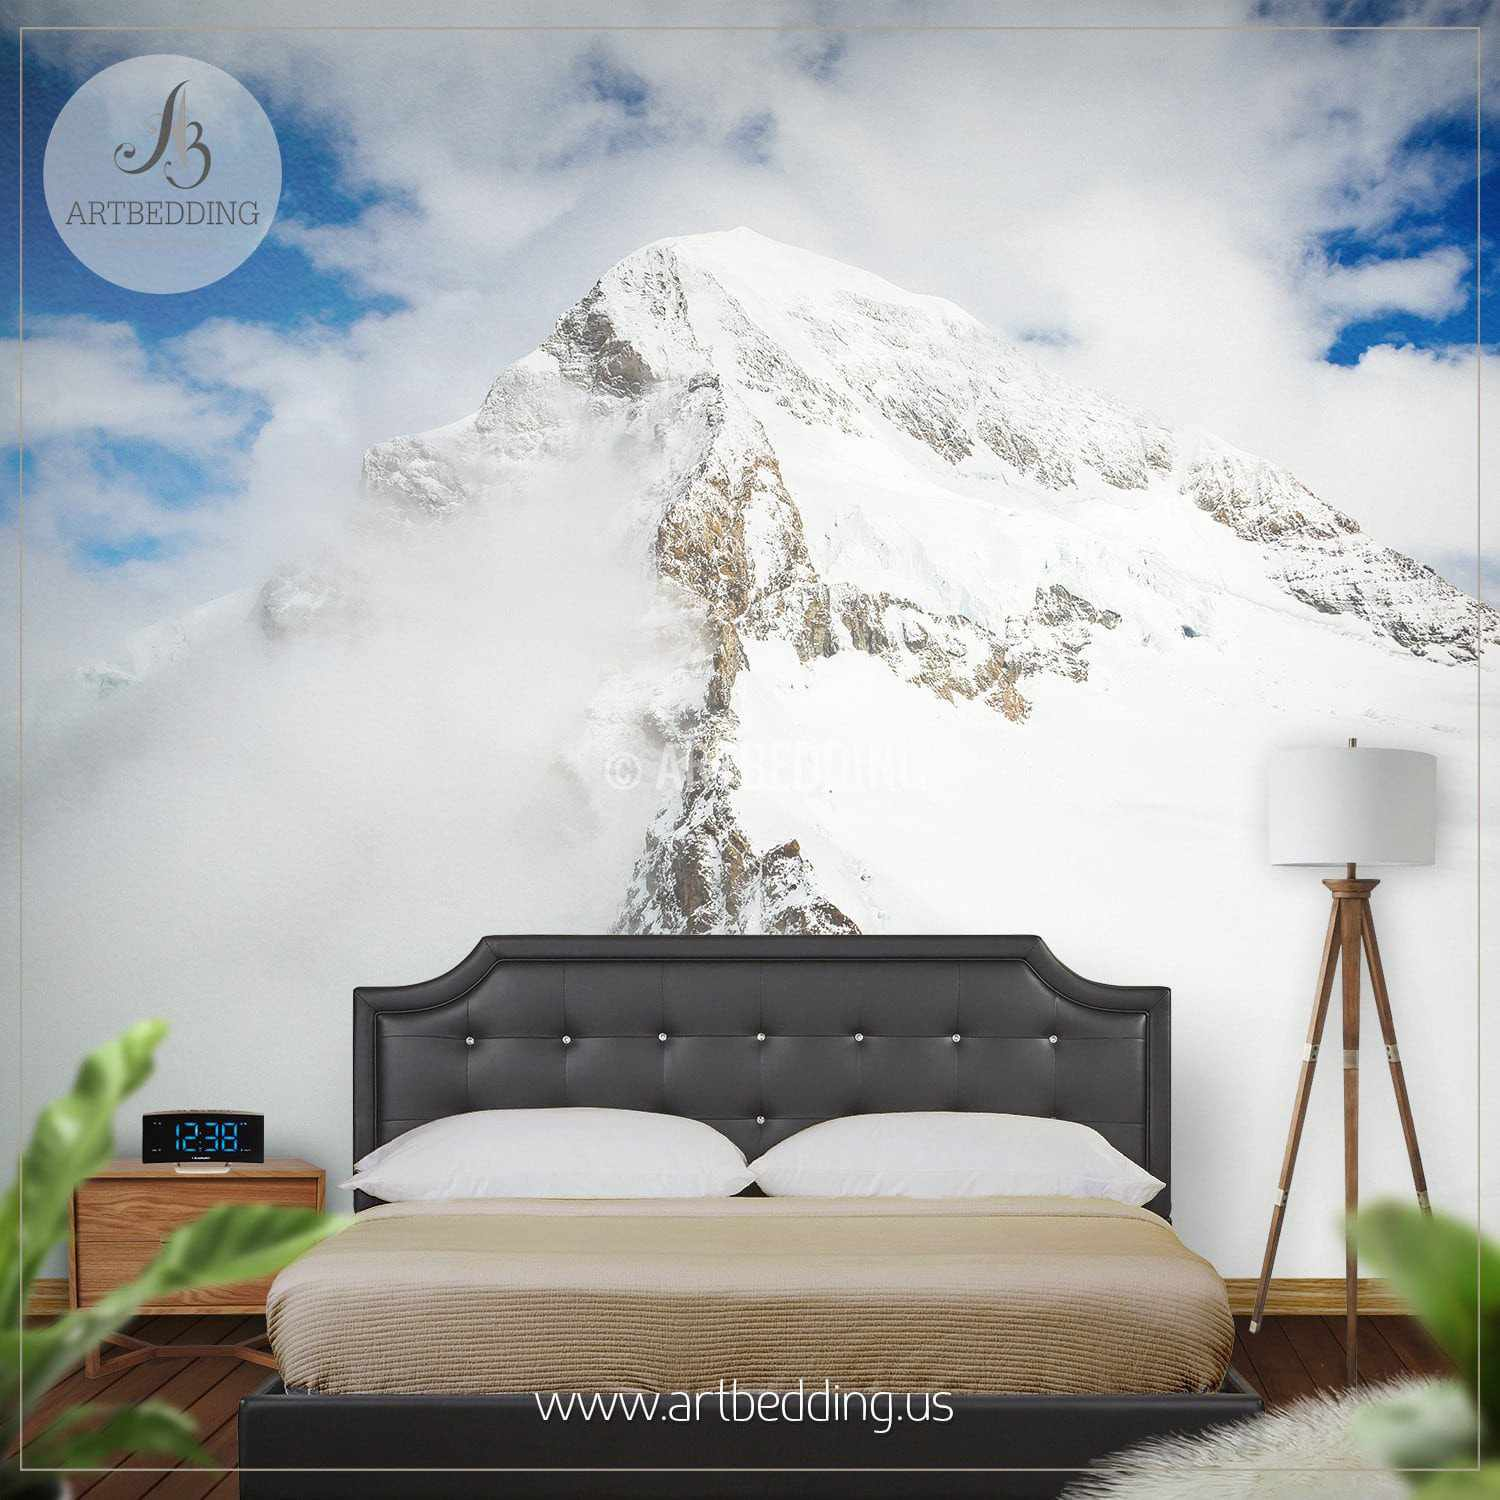 Snow mountain self adhesive photo mural artbedding snow mountain wall mural self adhesive peel stick photo mural forest wall mural amipublicfo Gallery